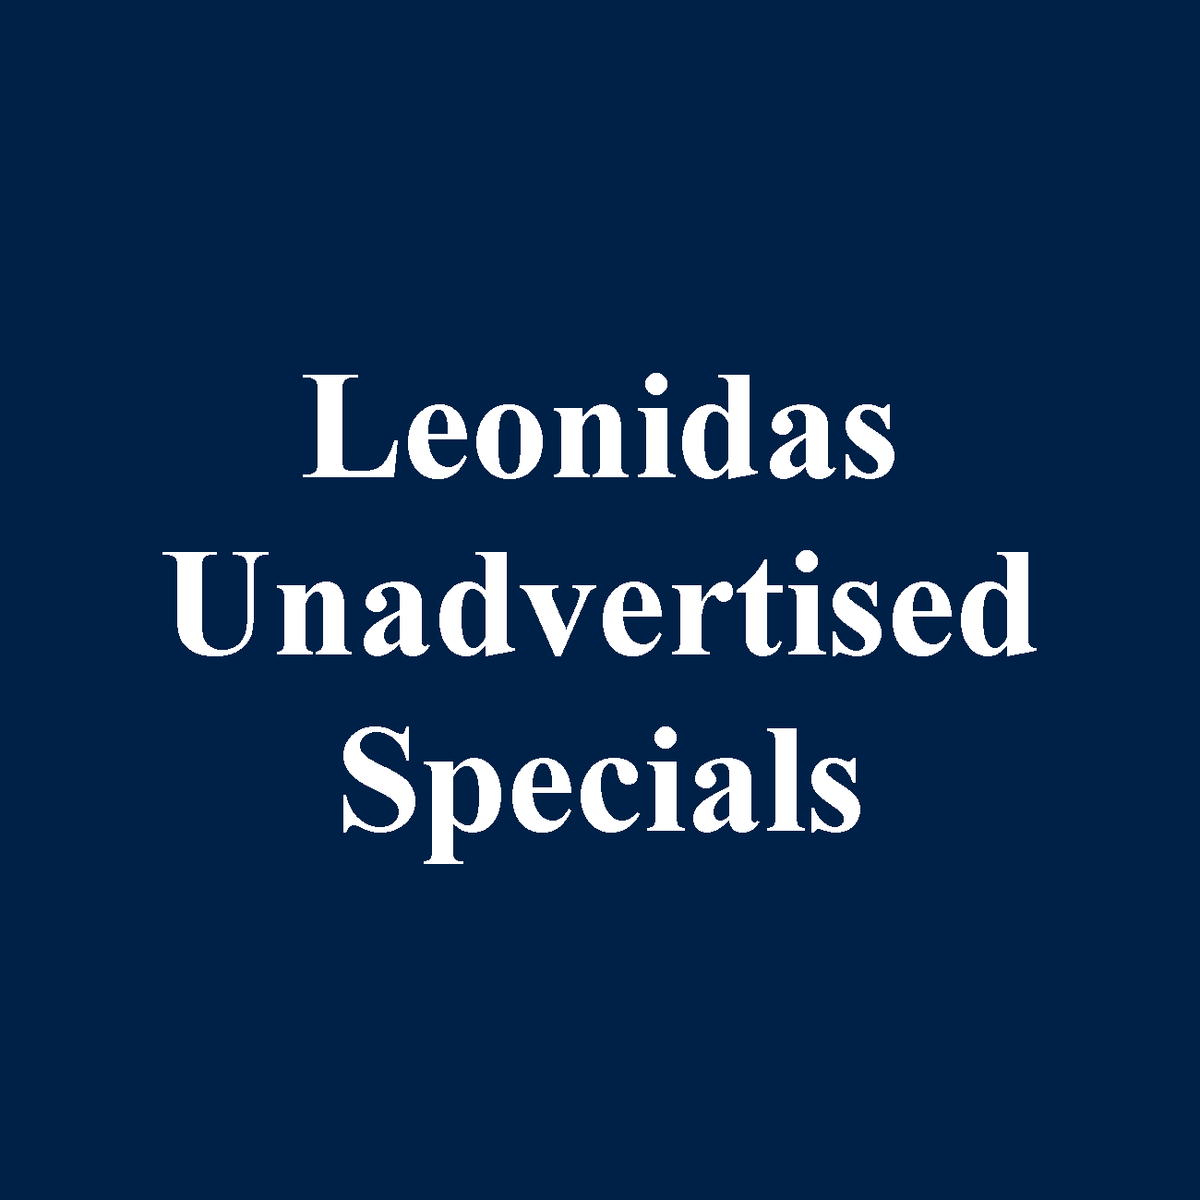 Leonidas Belgian Chocolate Unadvertised Specials